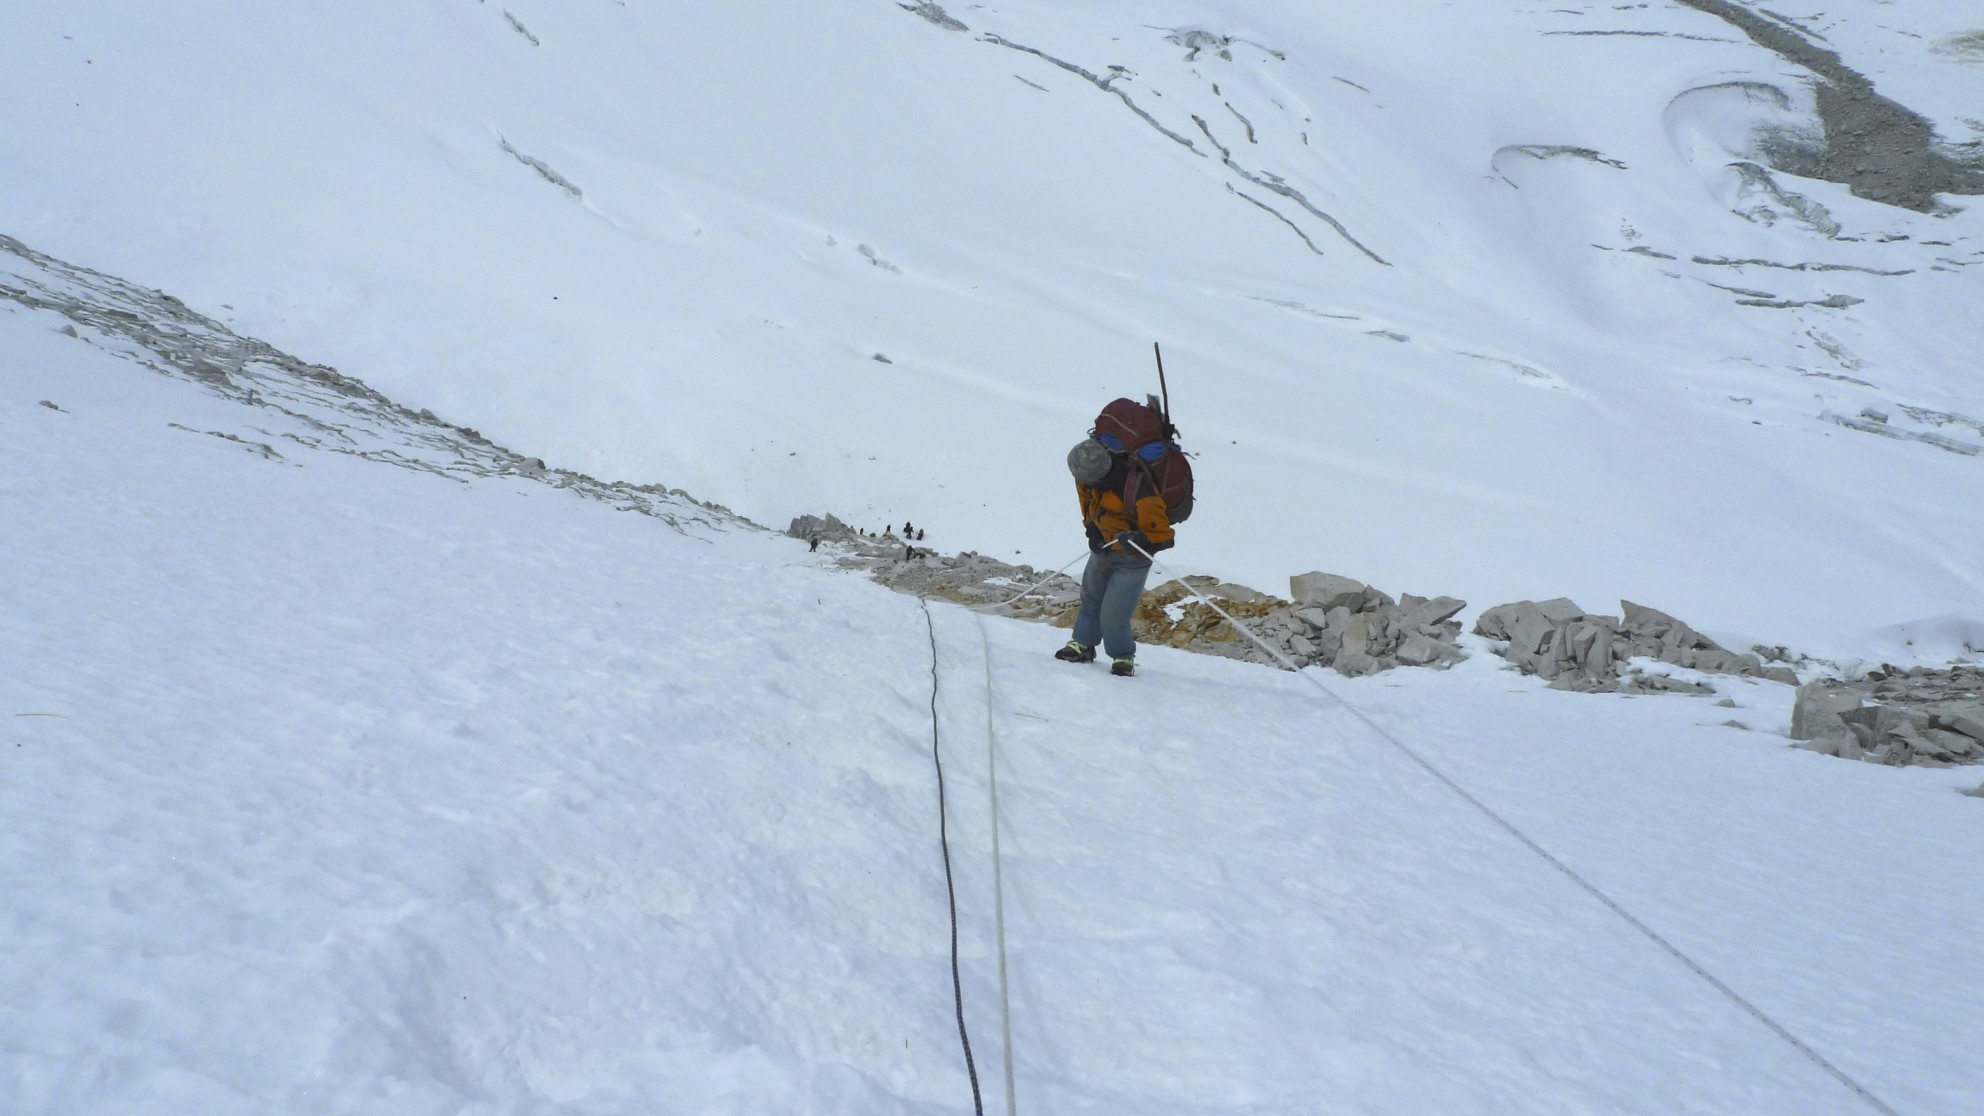 Descending from the West Col on fixed ropes.